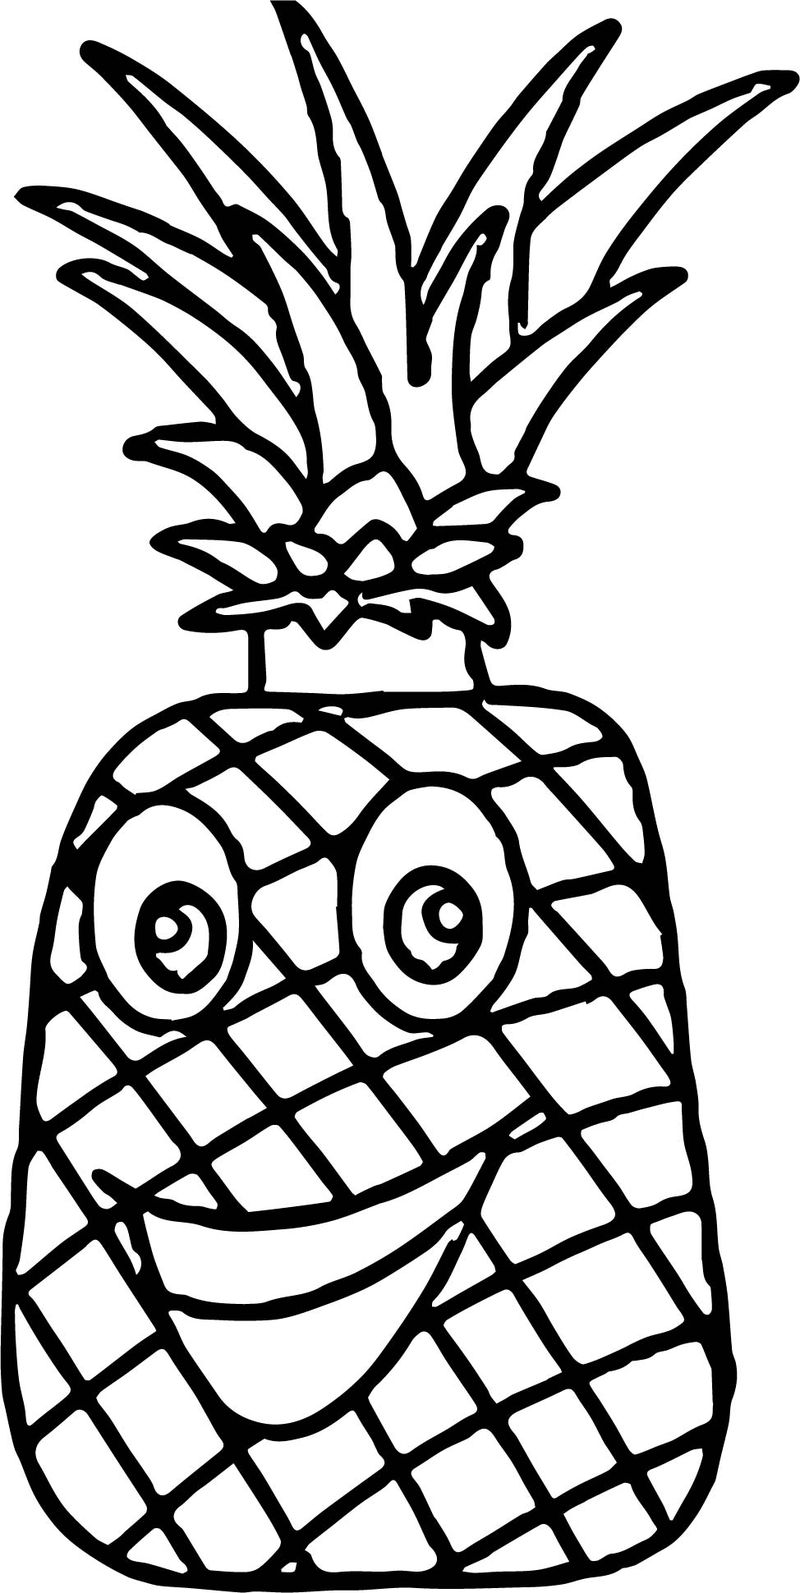 Pineapple Characters Cartoon Coloring Page - Coloring Sheets